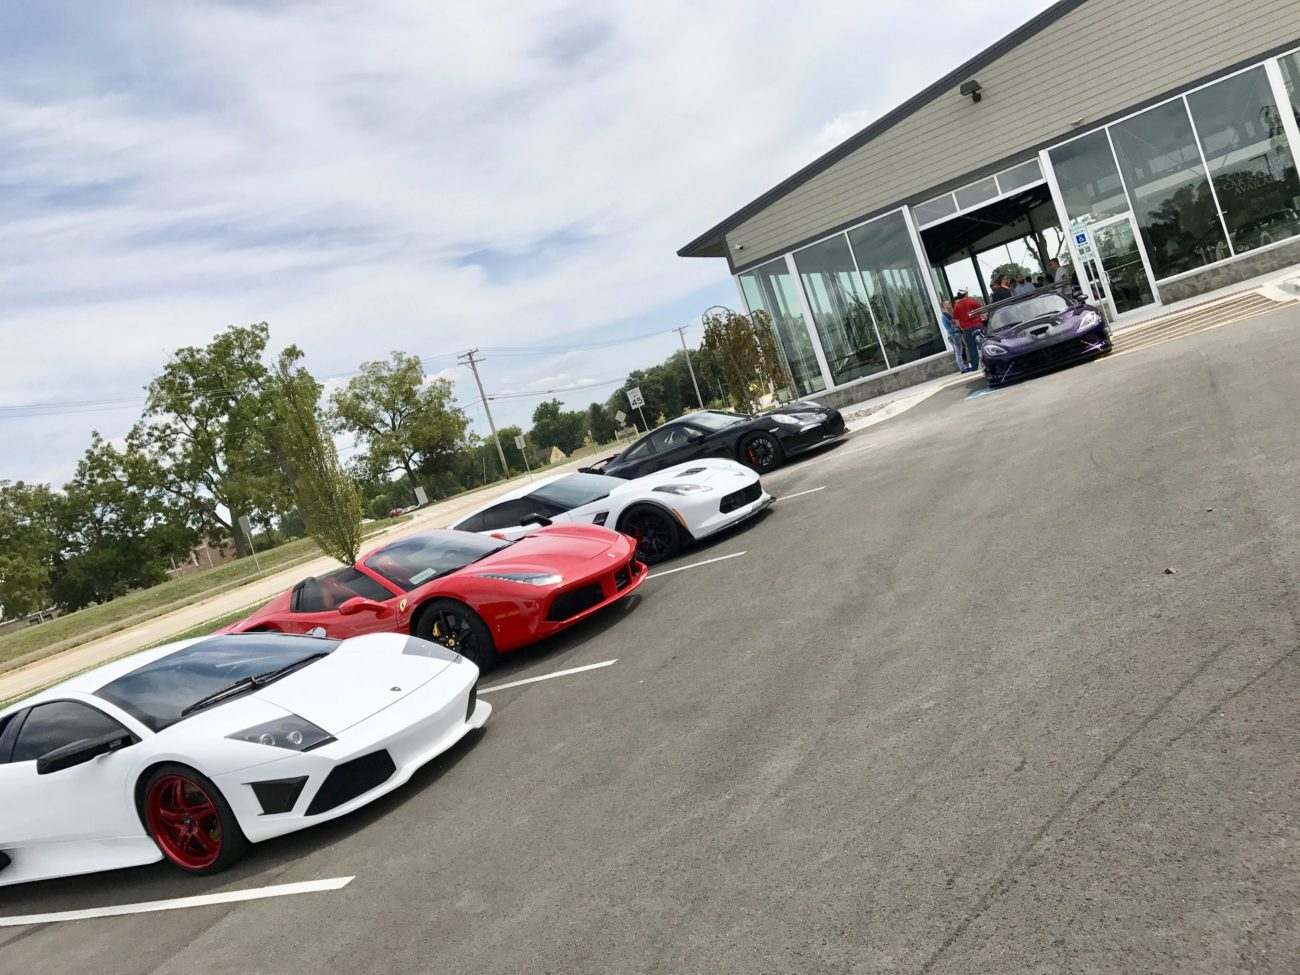 URR crew at Chicago Motor Cars Naperville